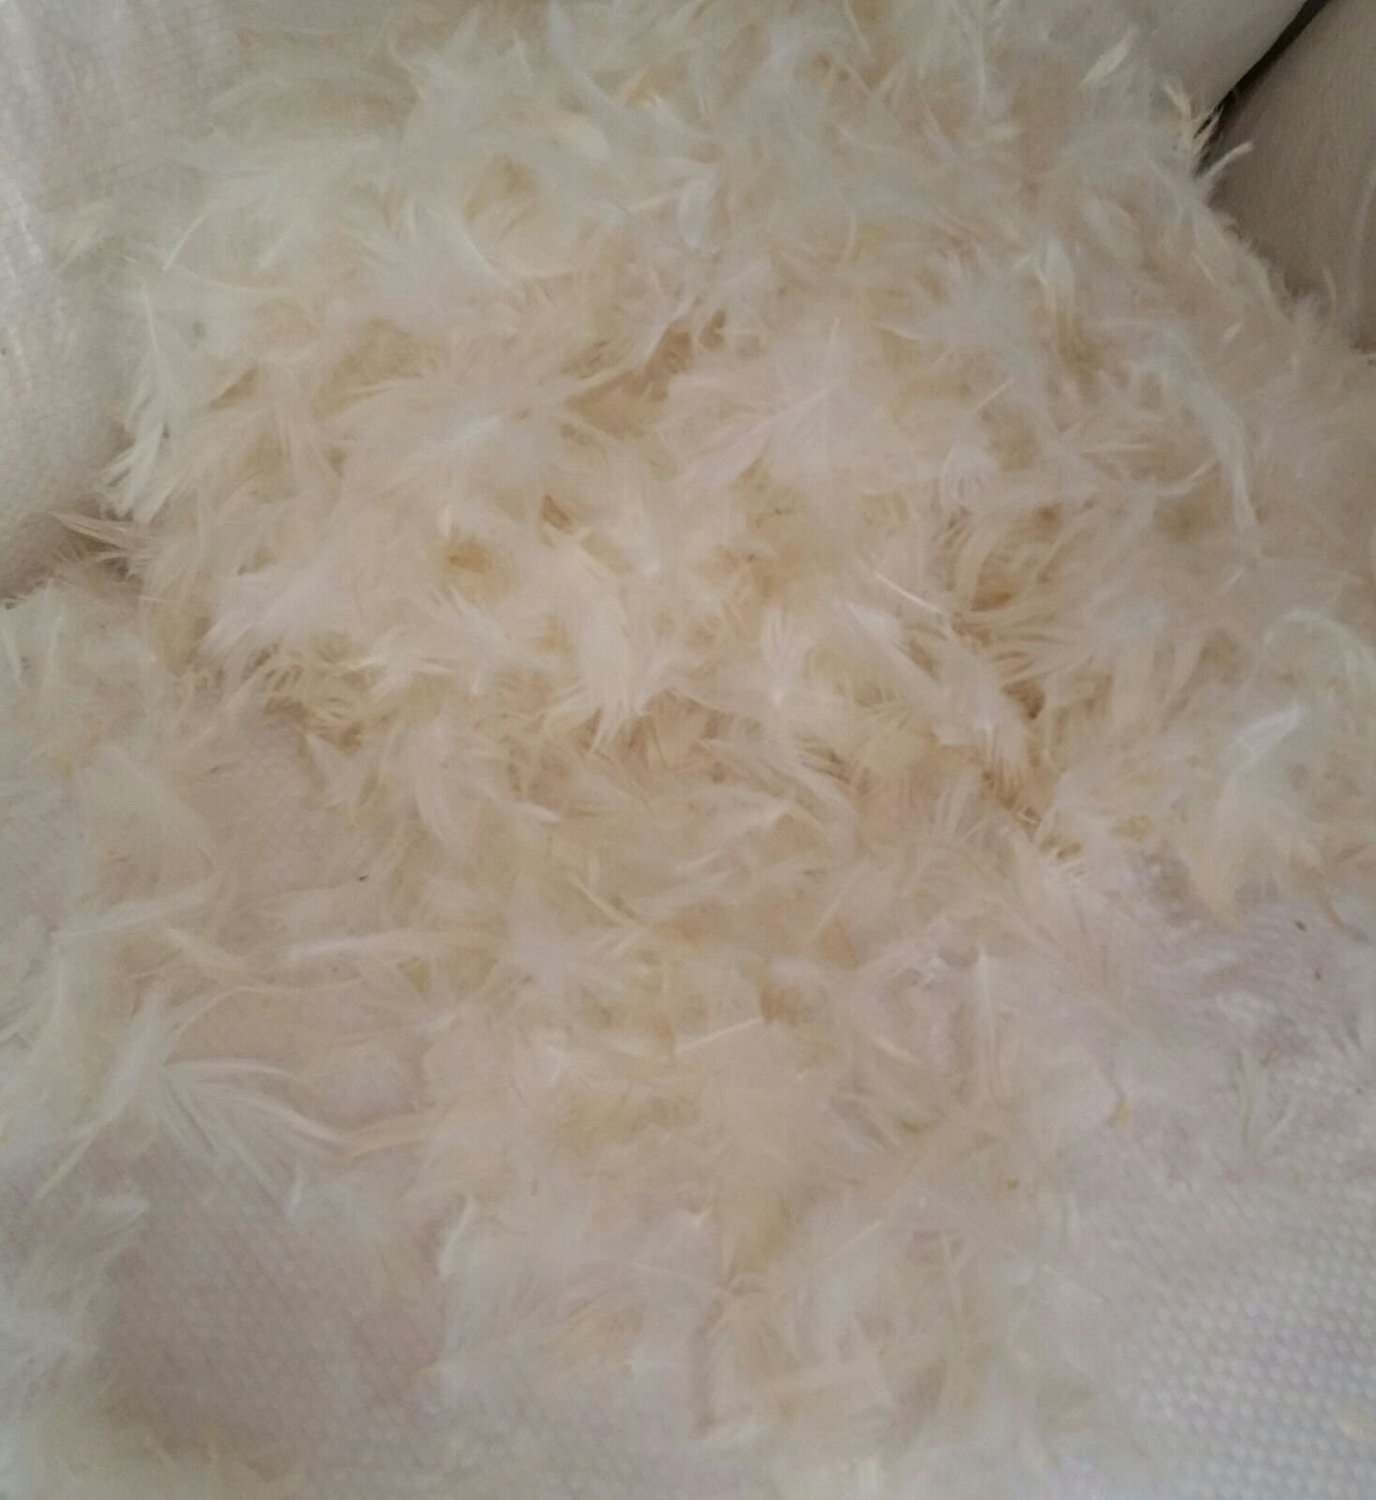 15/85 White Duck Down + Feather Stuffing & Fill – Bulk 10lb Bag – Hypoallergenic Pillow Filling, Repair, Restuff, Fluff for Couch Cushions, Comforters, Jackets – by East Coast Bedding (10 Lbs.)